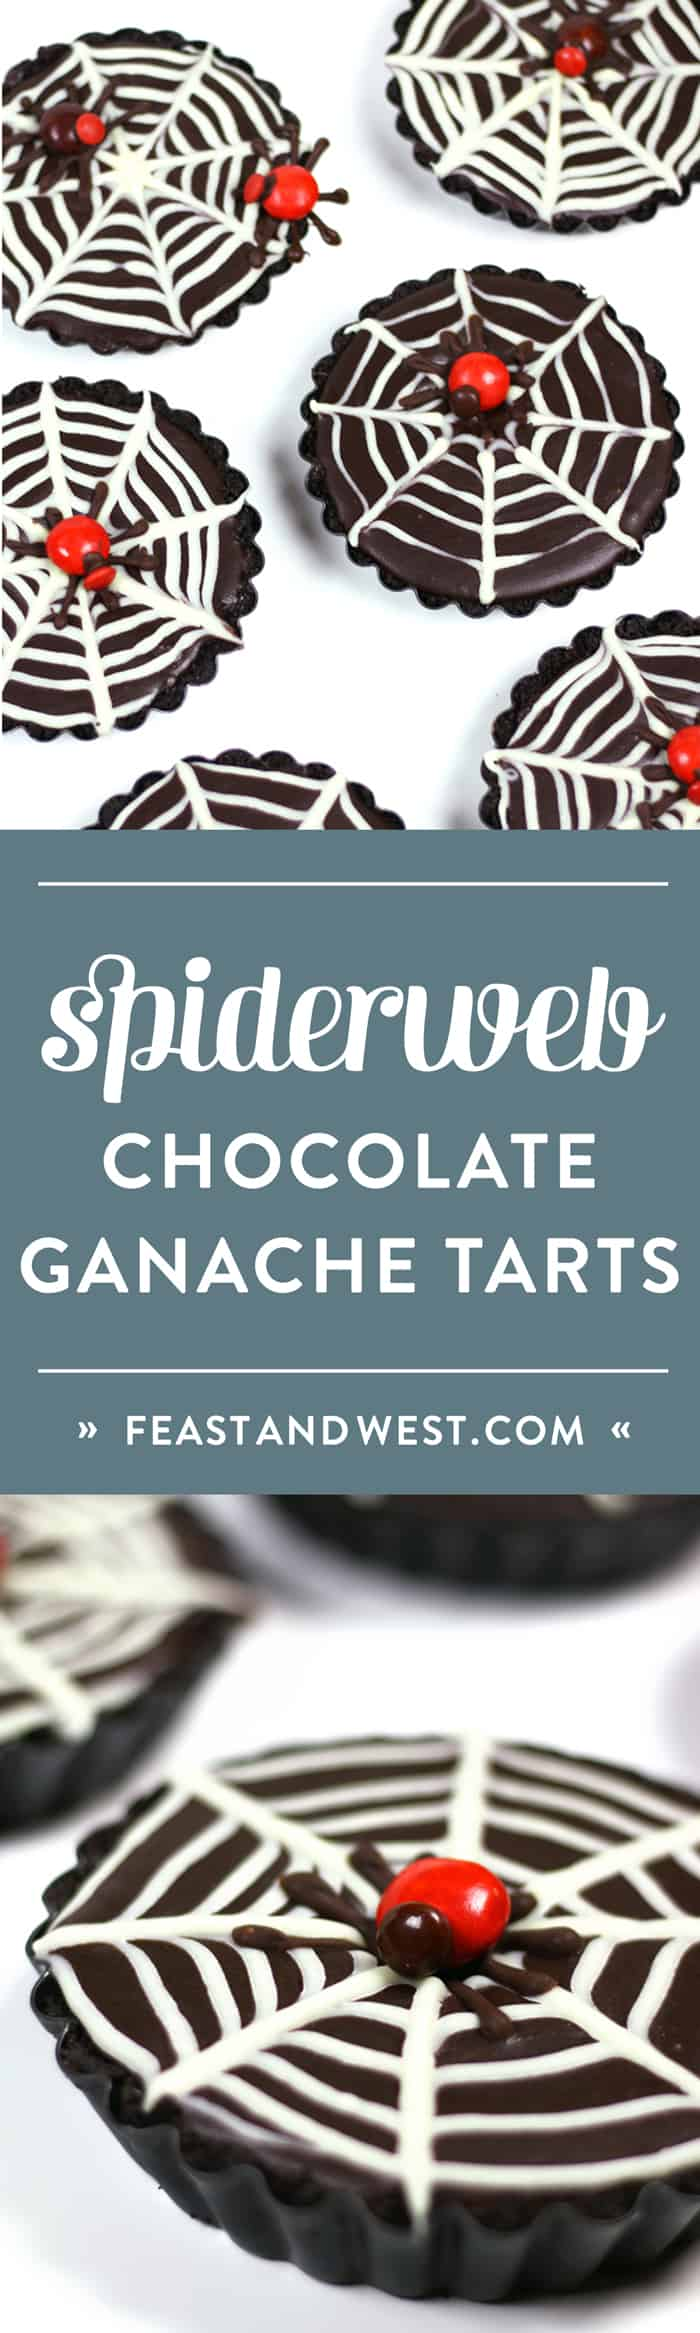 These No-Bake Mini Chocolate Ganache Spiderweb Tarts are just the right mixture of spooky, innocent and elegant. They are the perfect dessert for a black-and-white Halloween party or dinner. (via feastandwest.com)